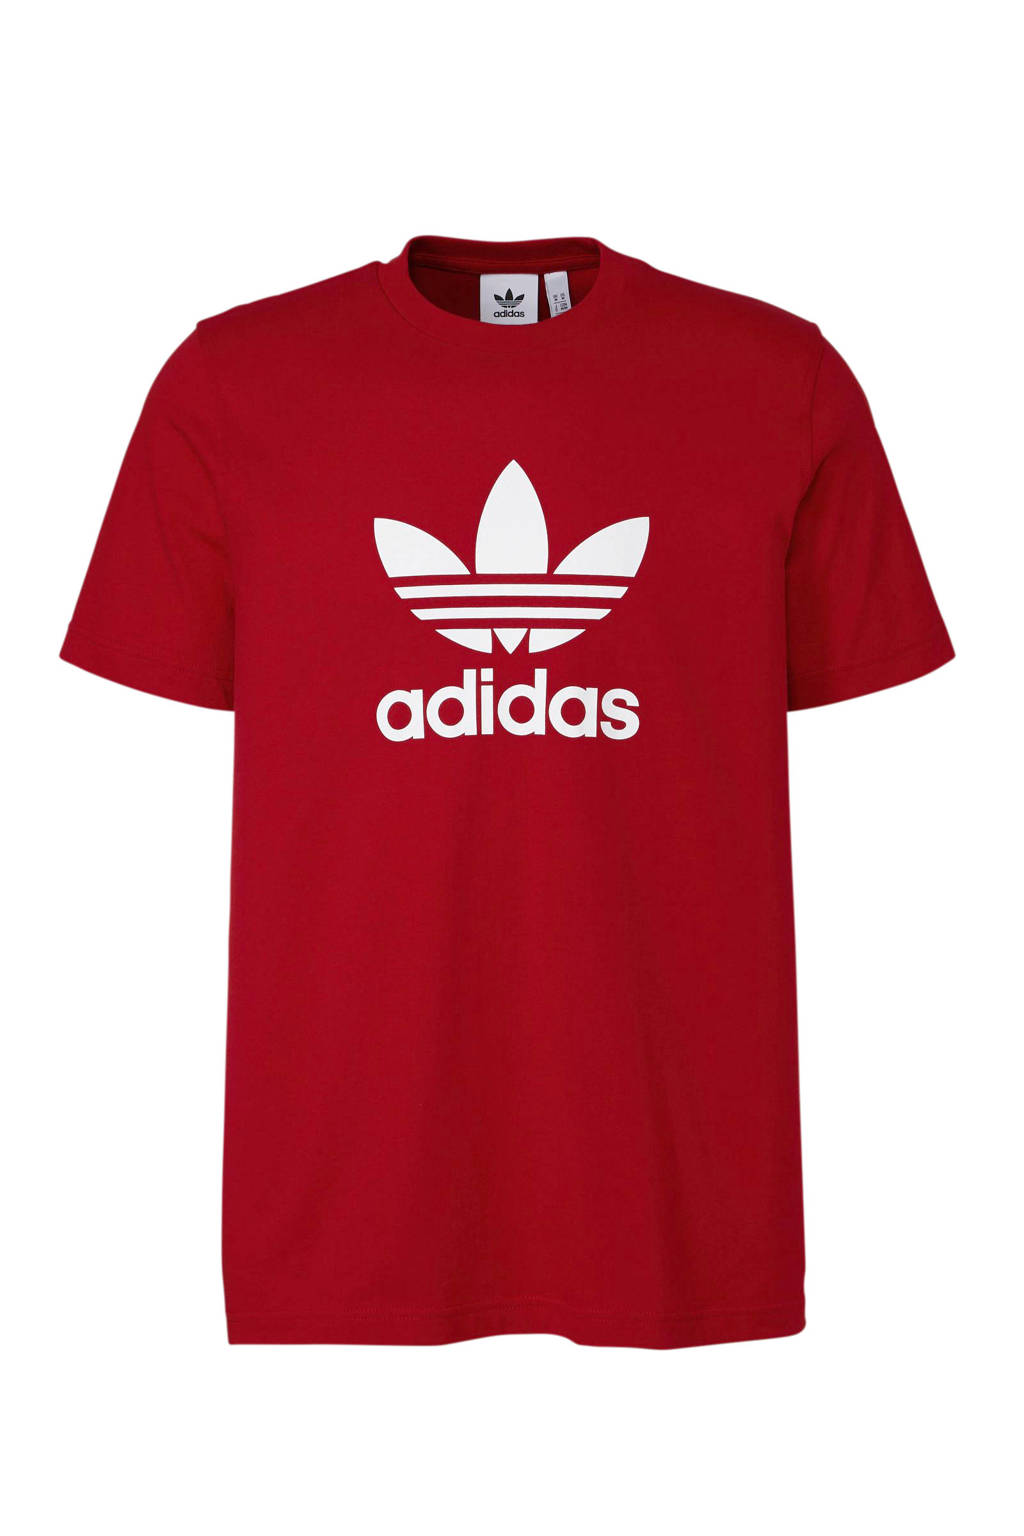 adidas originals   T-shirt rood, Rood/wit